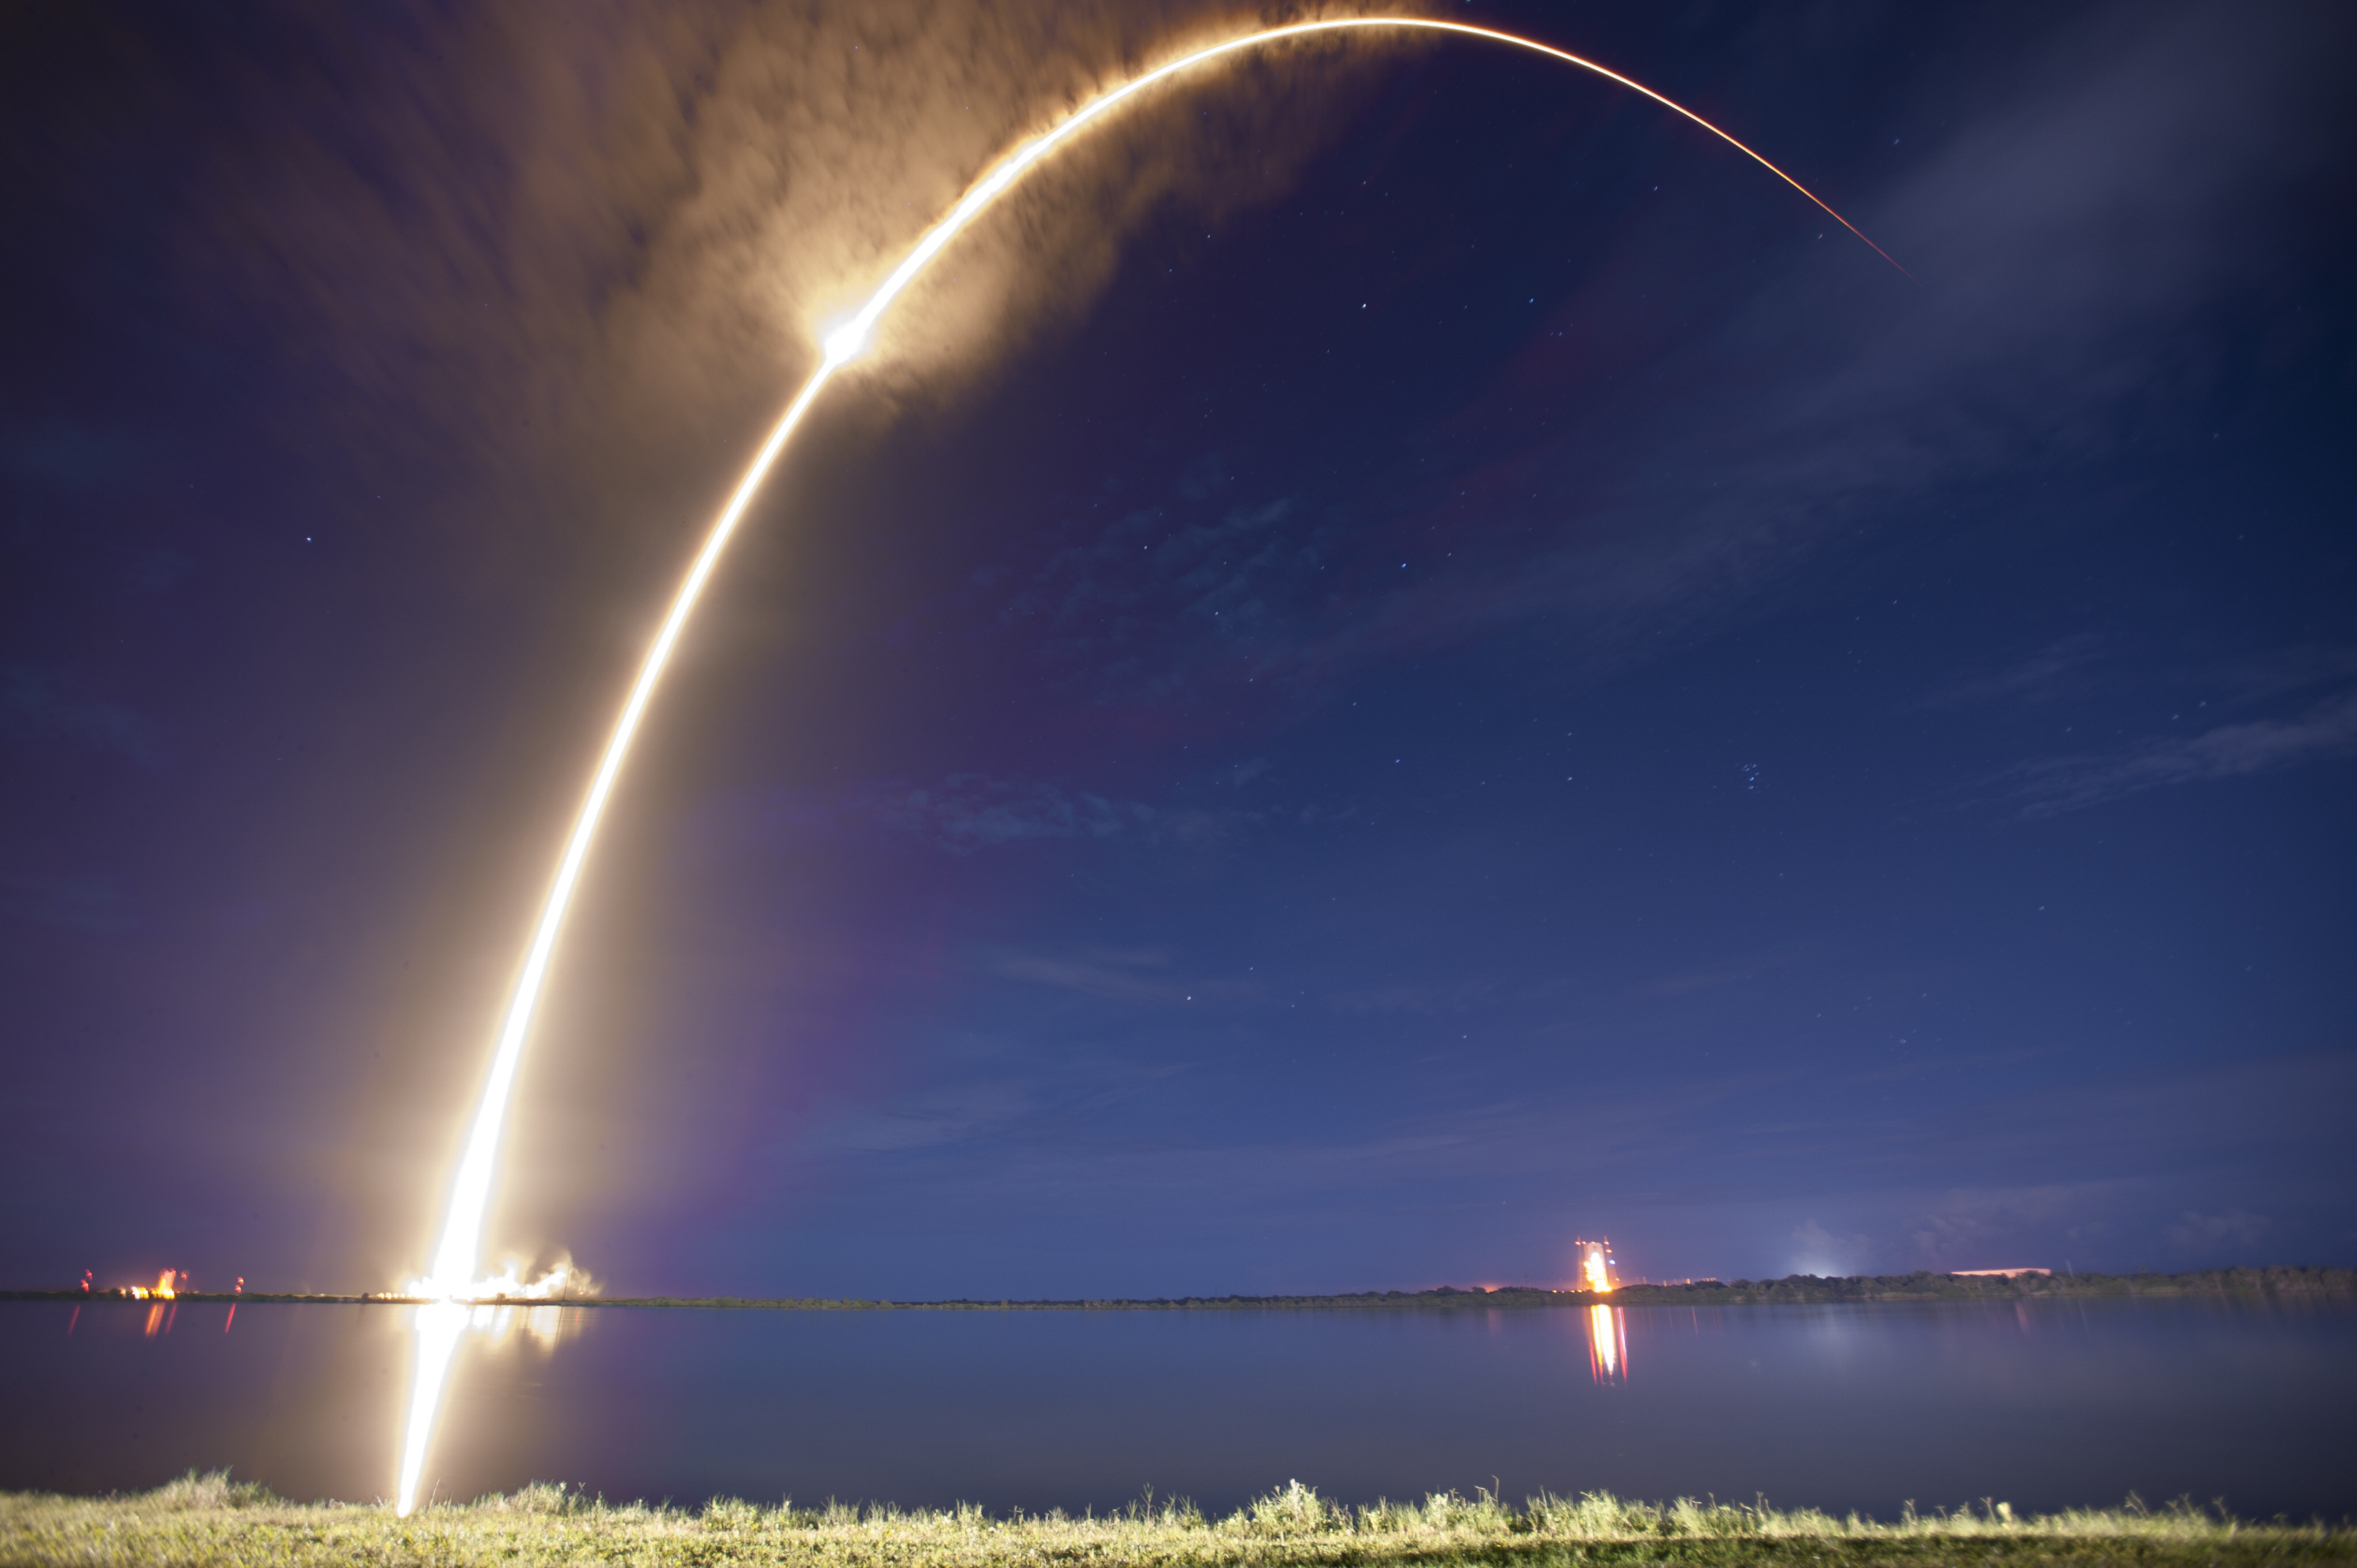 Spacex Launches Asiasat 6 A Month After Lofting Asiasat 8